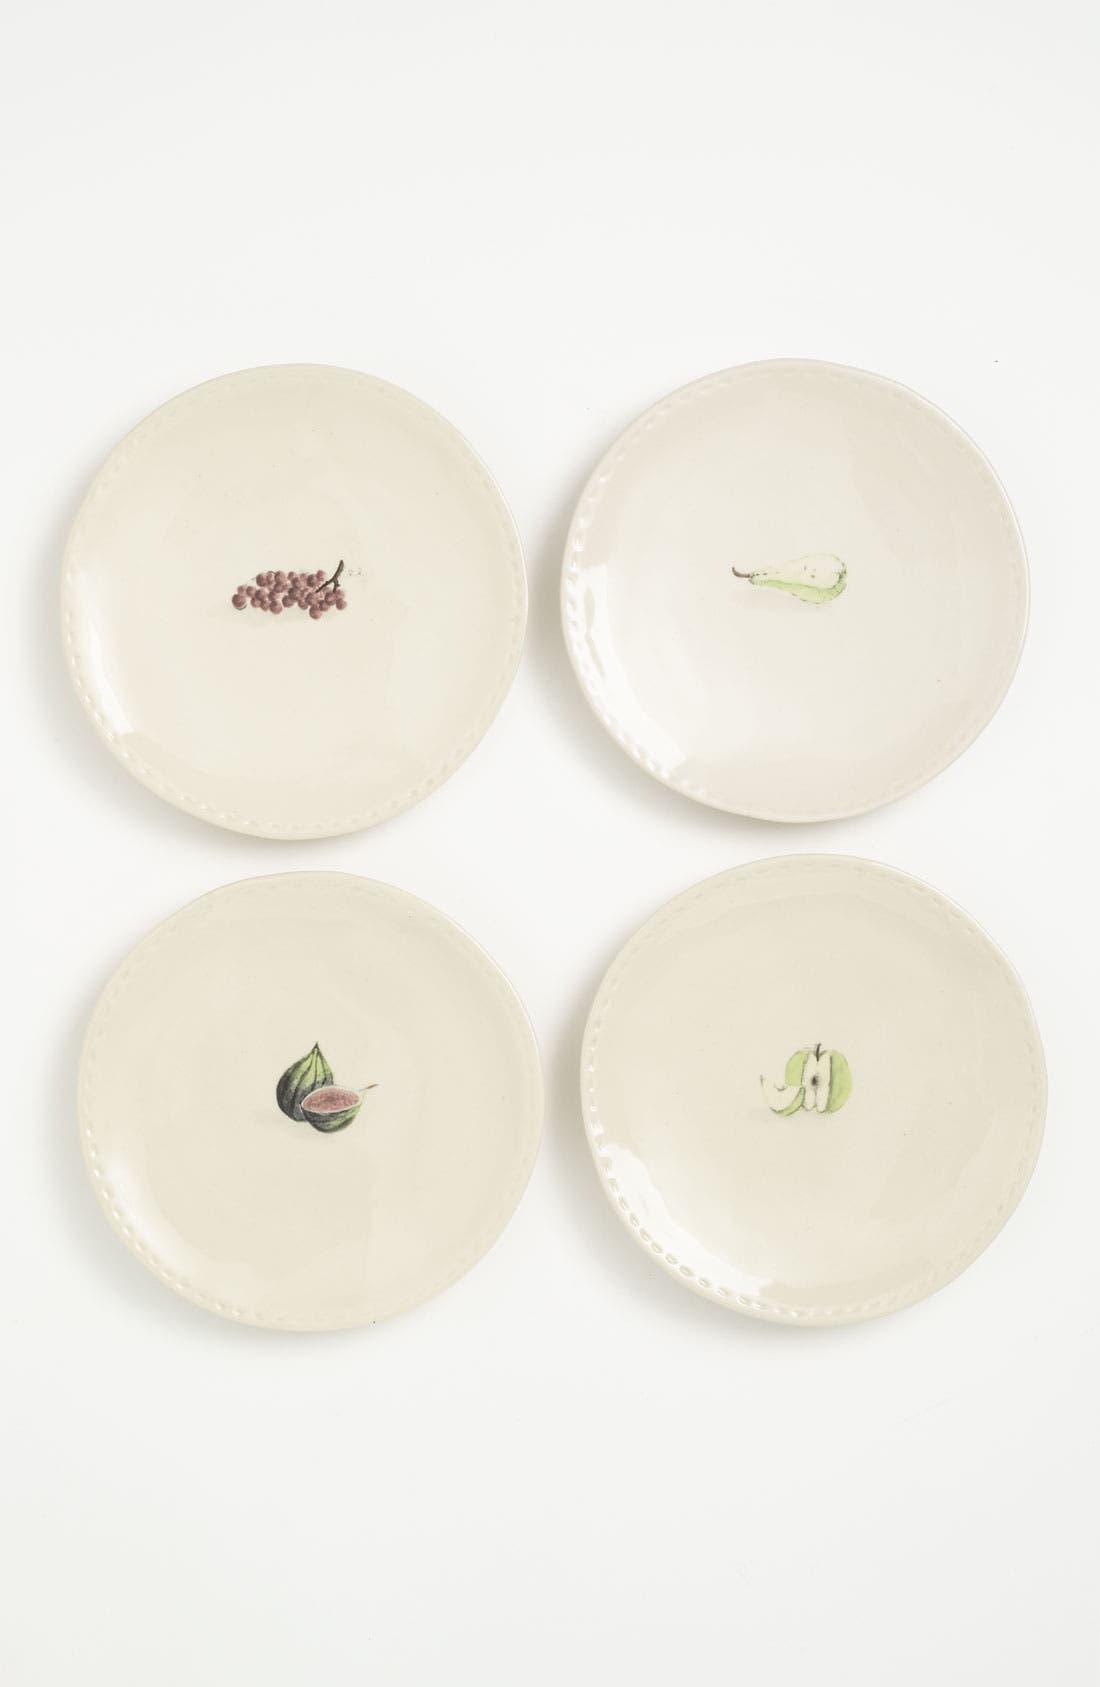 Alternate Image 1 Selected - Rae Dunn by Magenta 'Stitched Fruit' Plates (Set of 4)